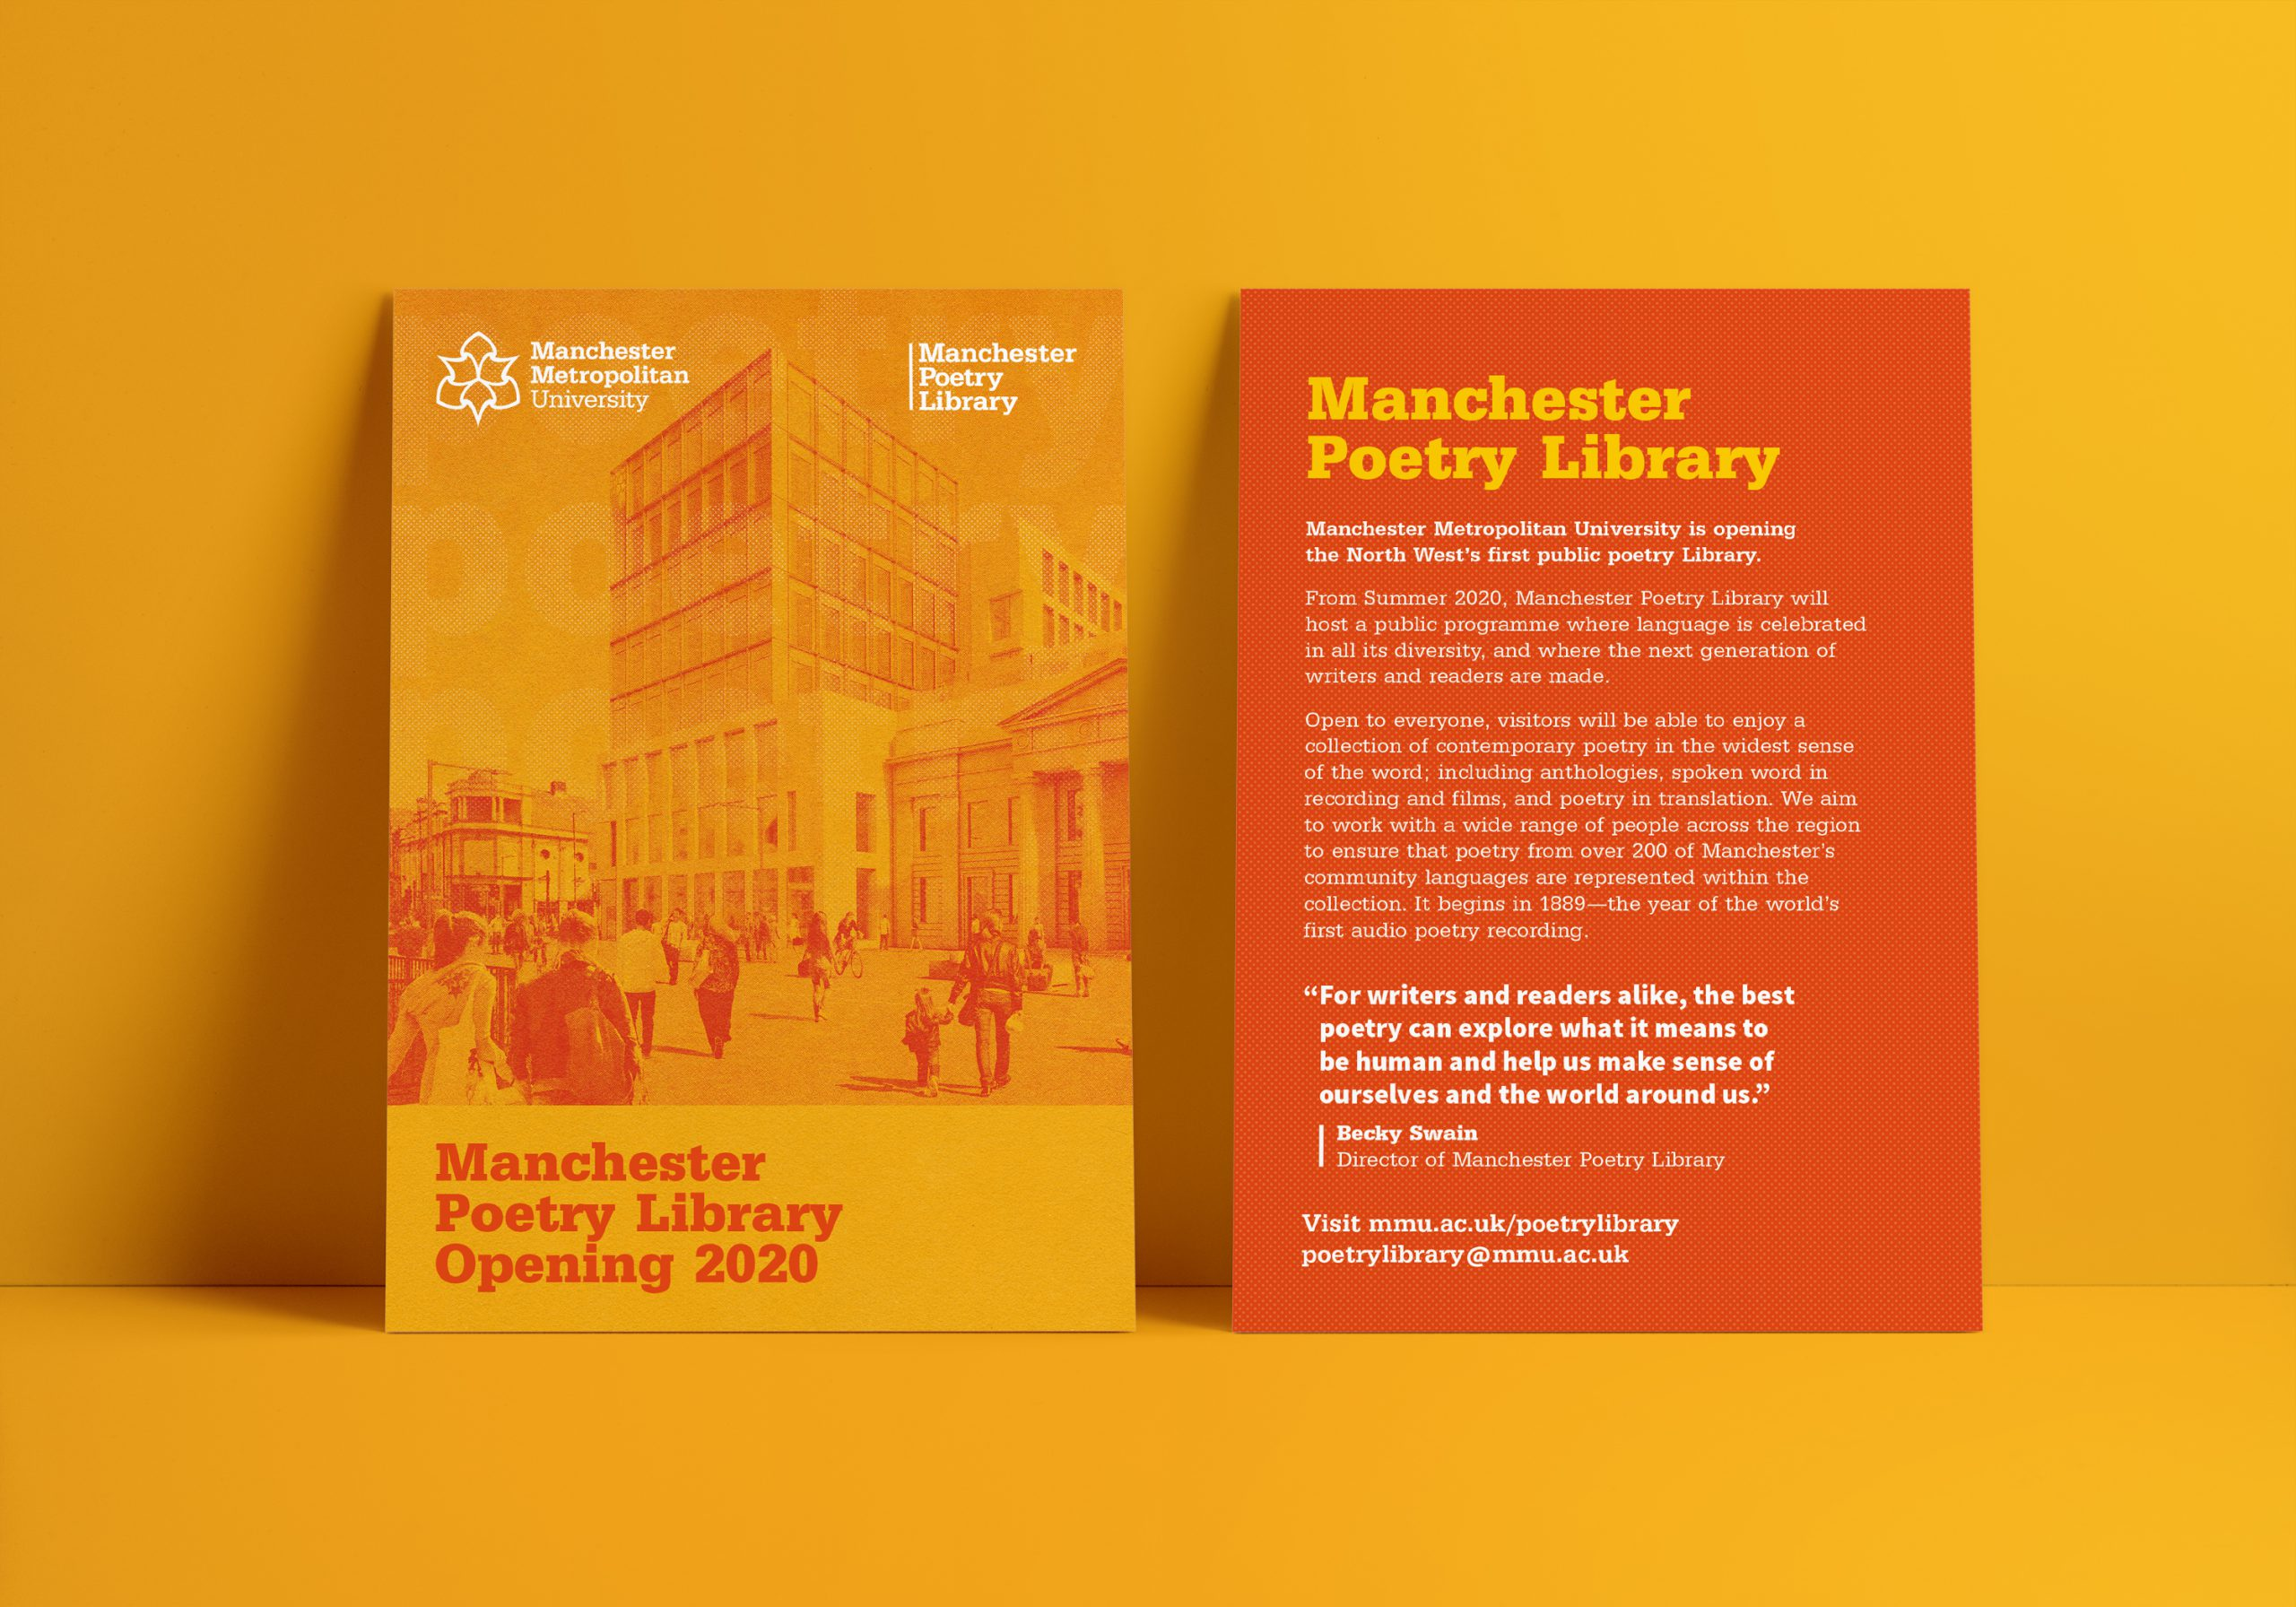 front and back of orange and yellow flyer propped against a yellow wall showing manchester poetry library and a building with crowds of people infront of it